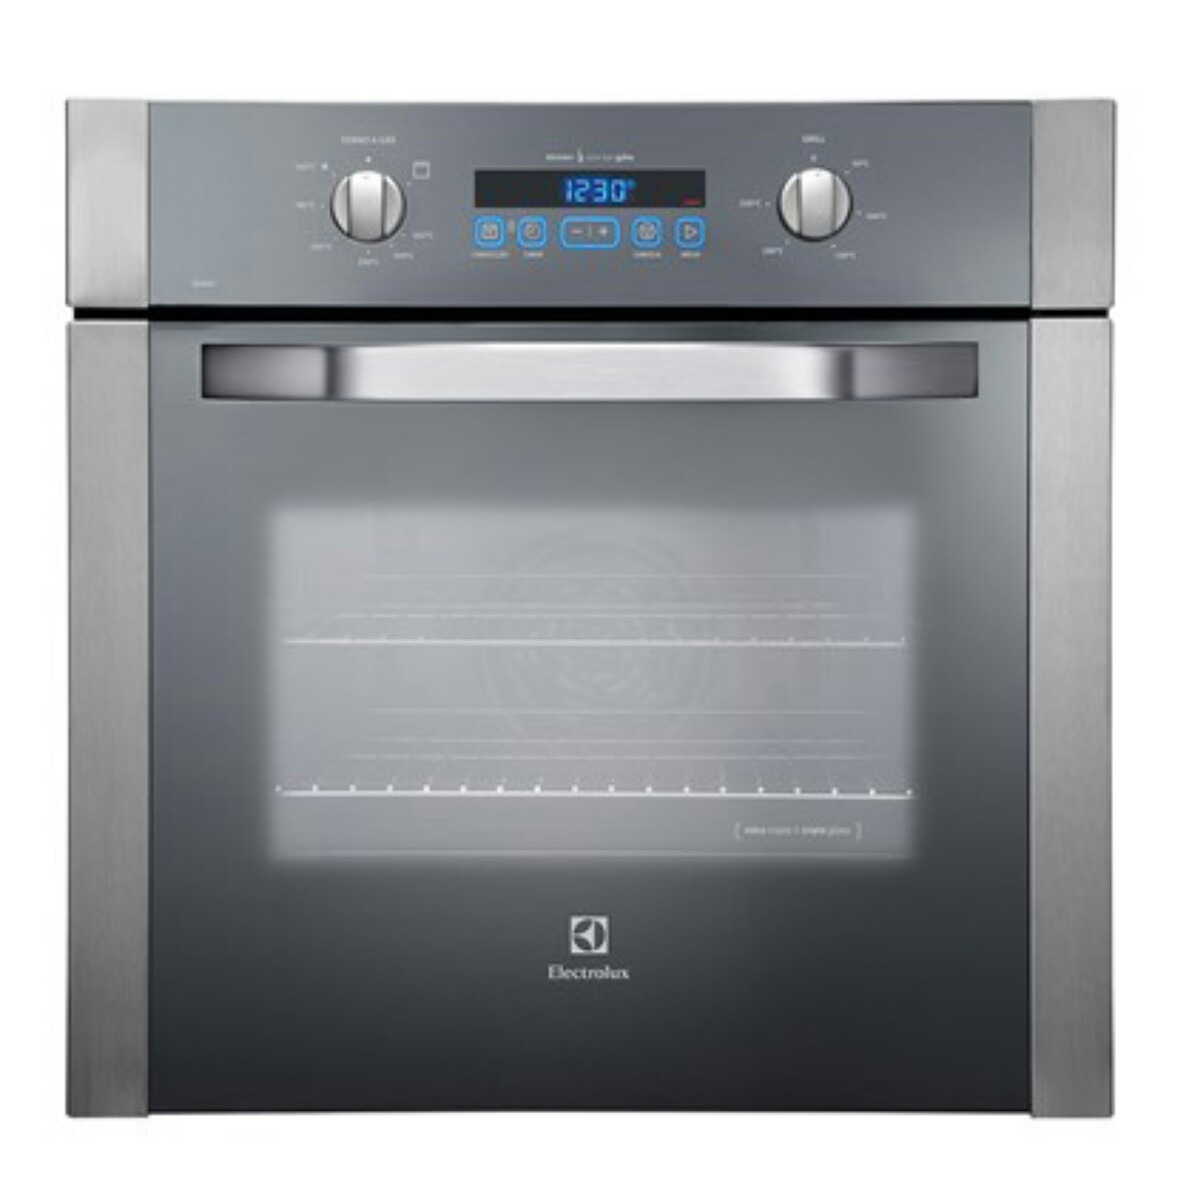 Forno electrolux a gas og8dx exclusivo r no for Forno a gas